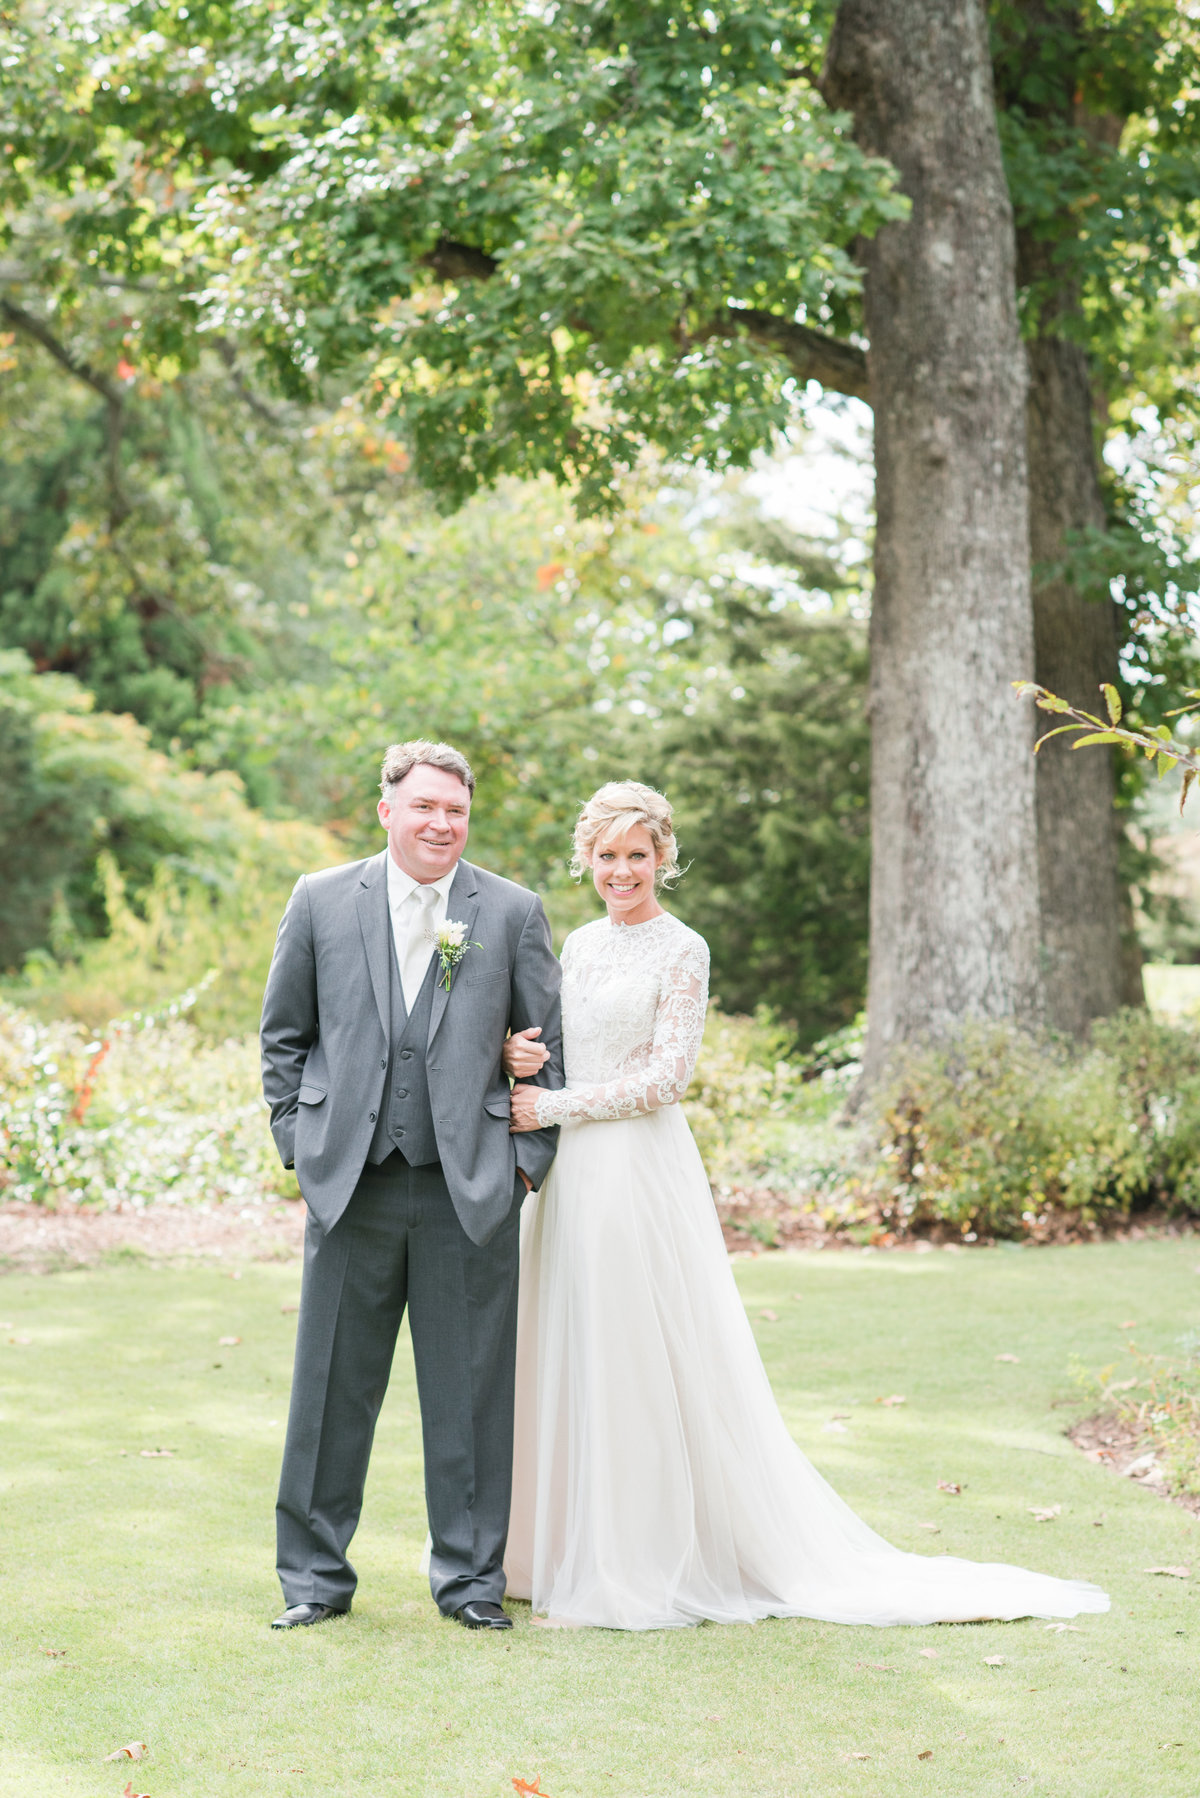 Fletcher_Park_Raleigh_NC_Wedding0056